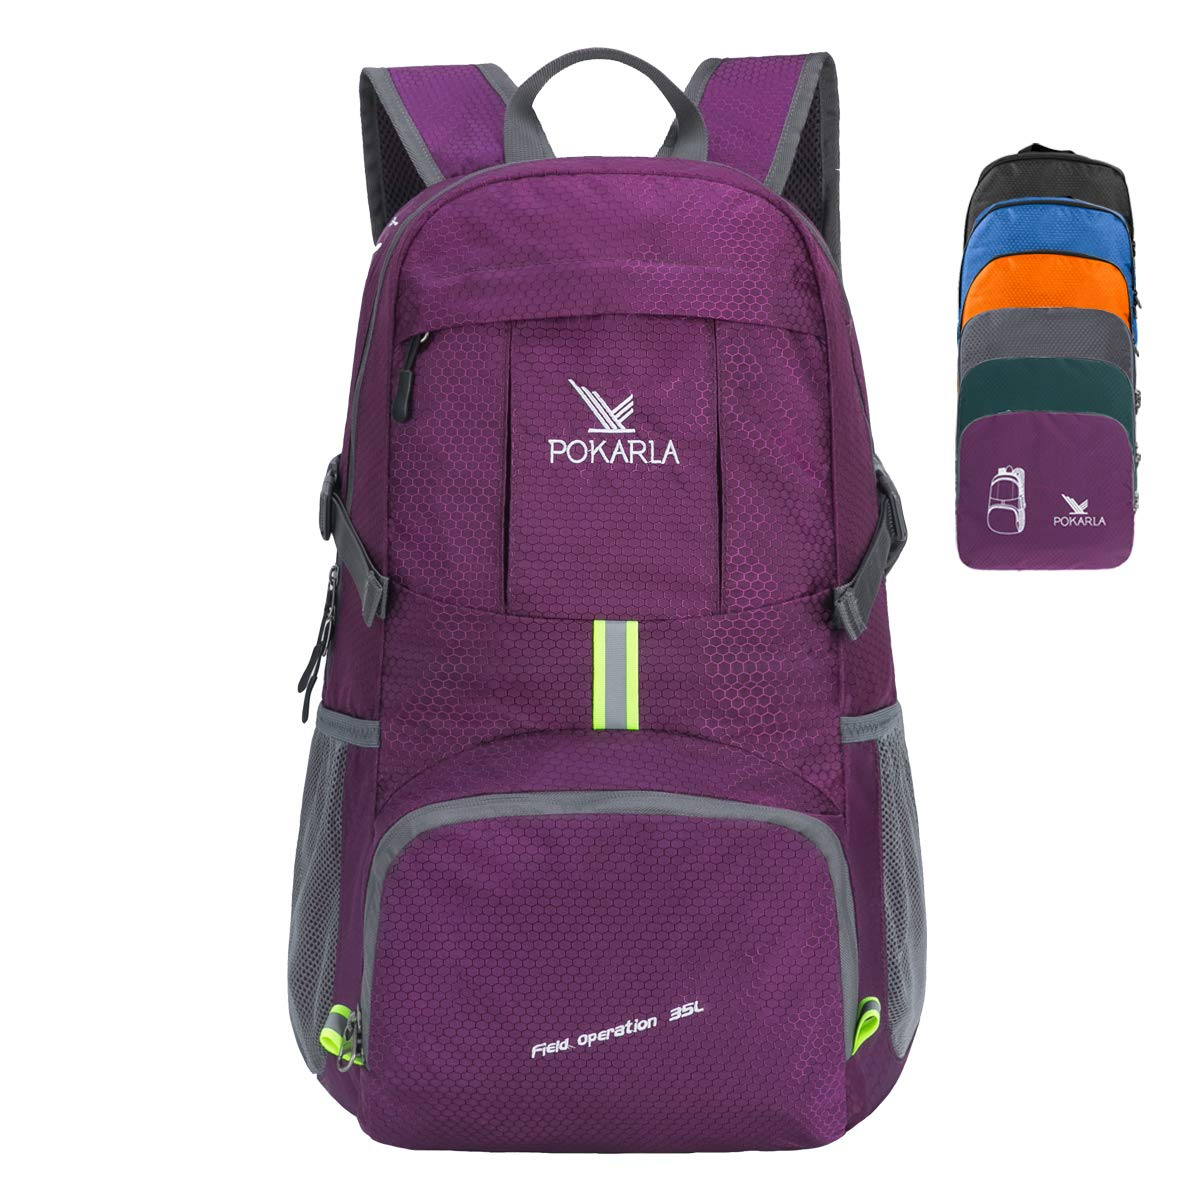 POKARLA 35L Foldable Durable Backpack Travel Hiking Daypack Ultra Lightweight Packable Carry On Bag Unisex Outdoor Sports with USB Cable/Water Tube Hole Upgraded Purple